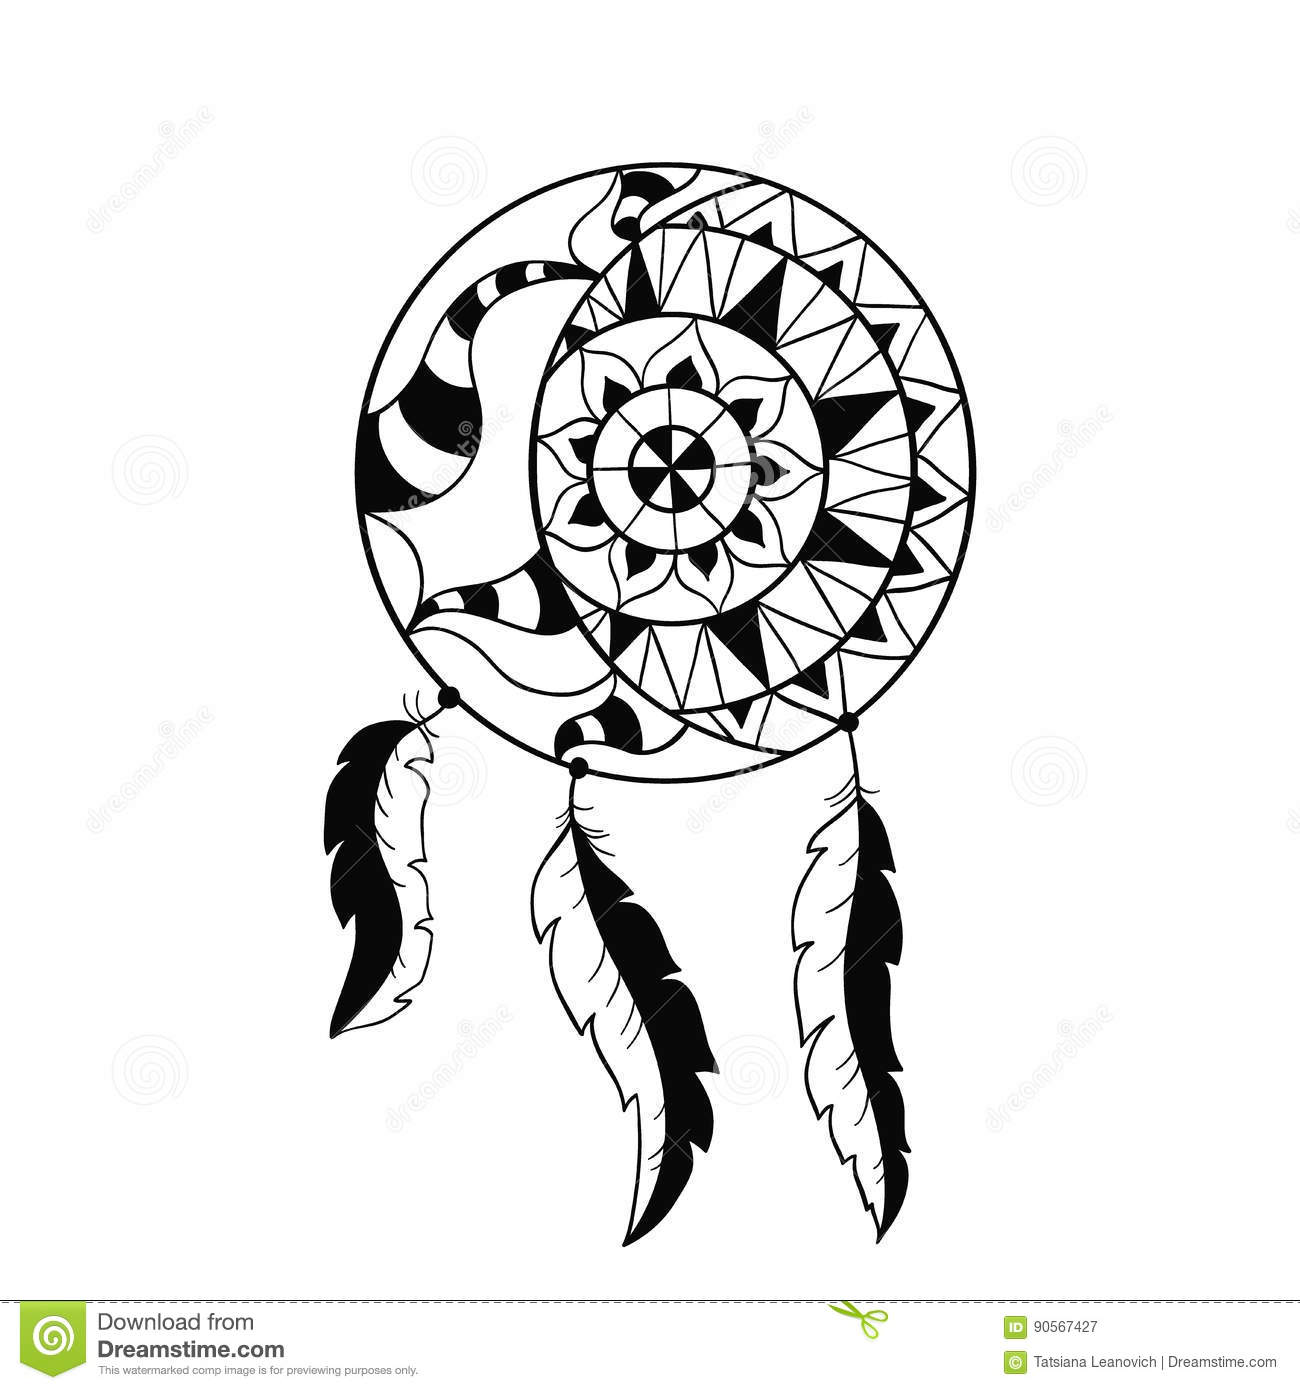 Dream Catcher Symbol Sun And Moon Ethnic Indian Element Royalty Free Stock Photography